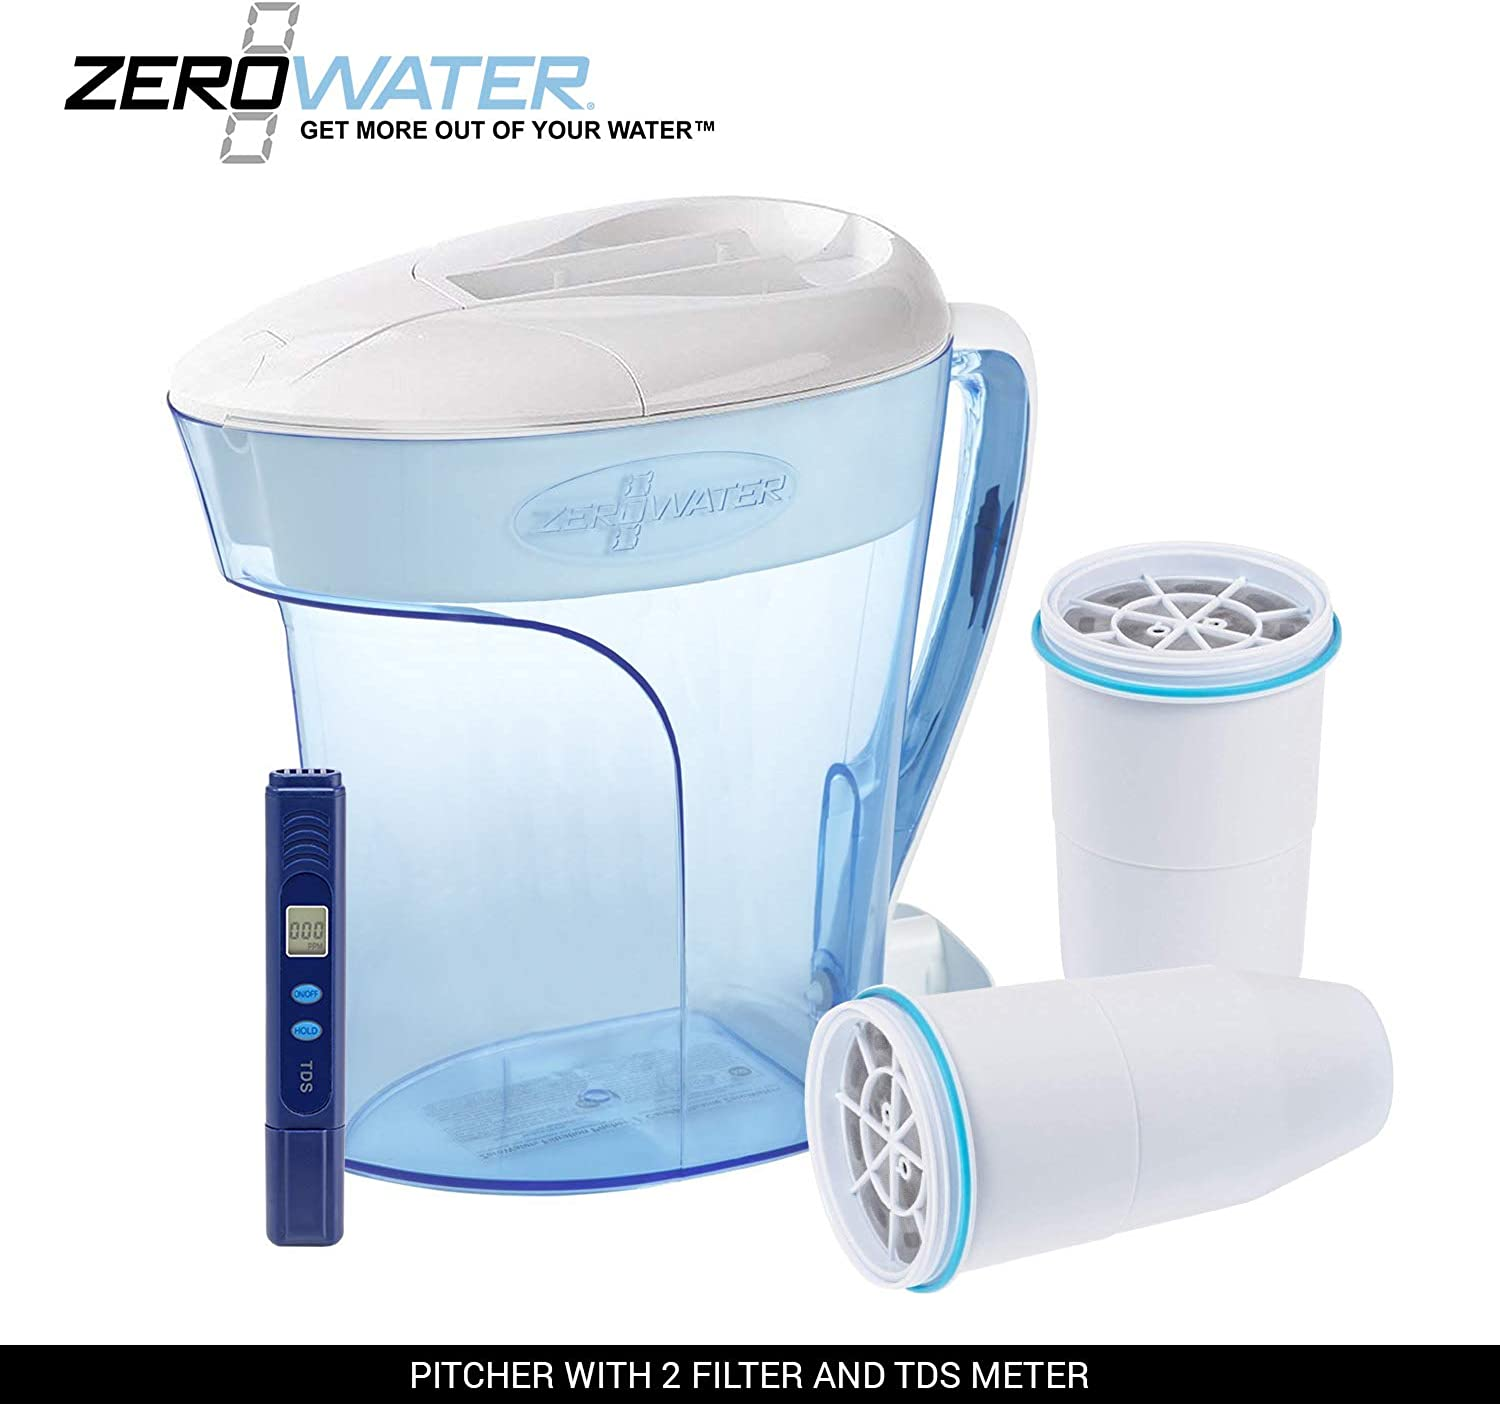 ZeroWater 10-Cup Pitcher with 2 Replacement Filter and Free Water Quality Meter